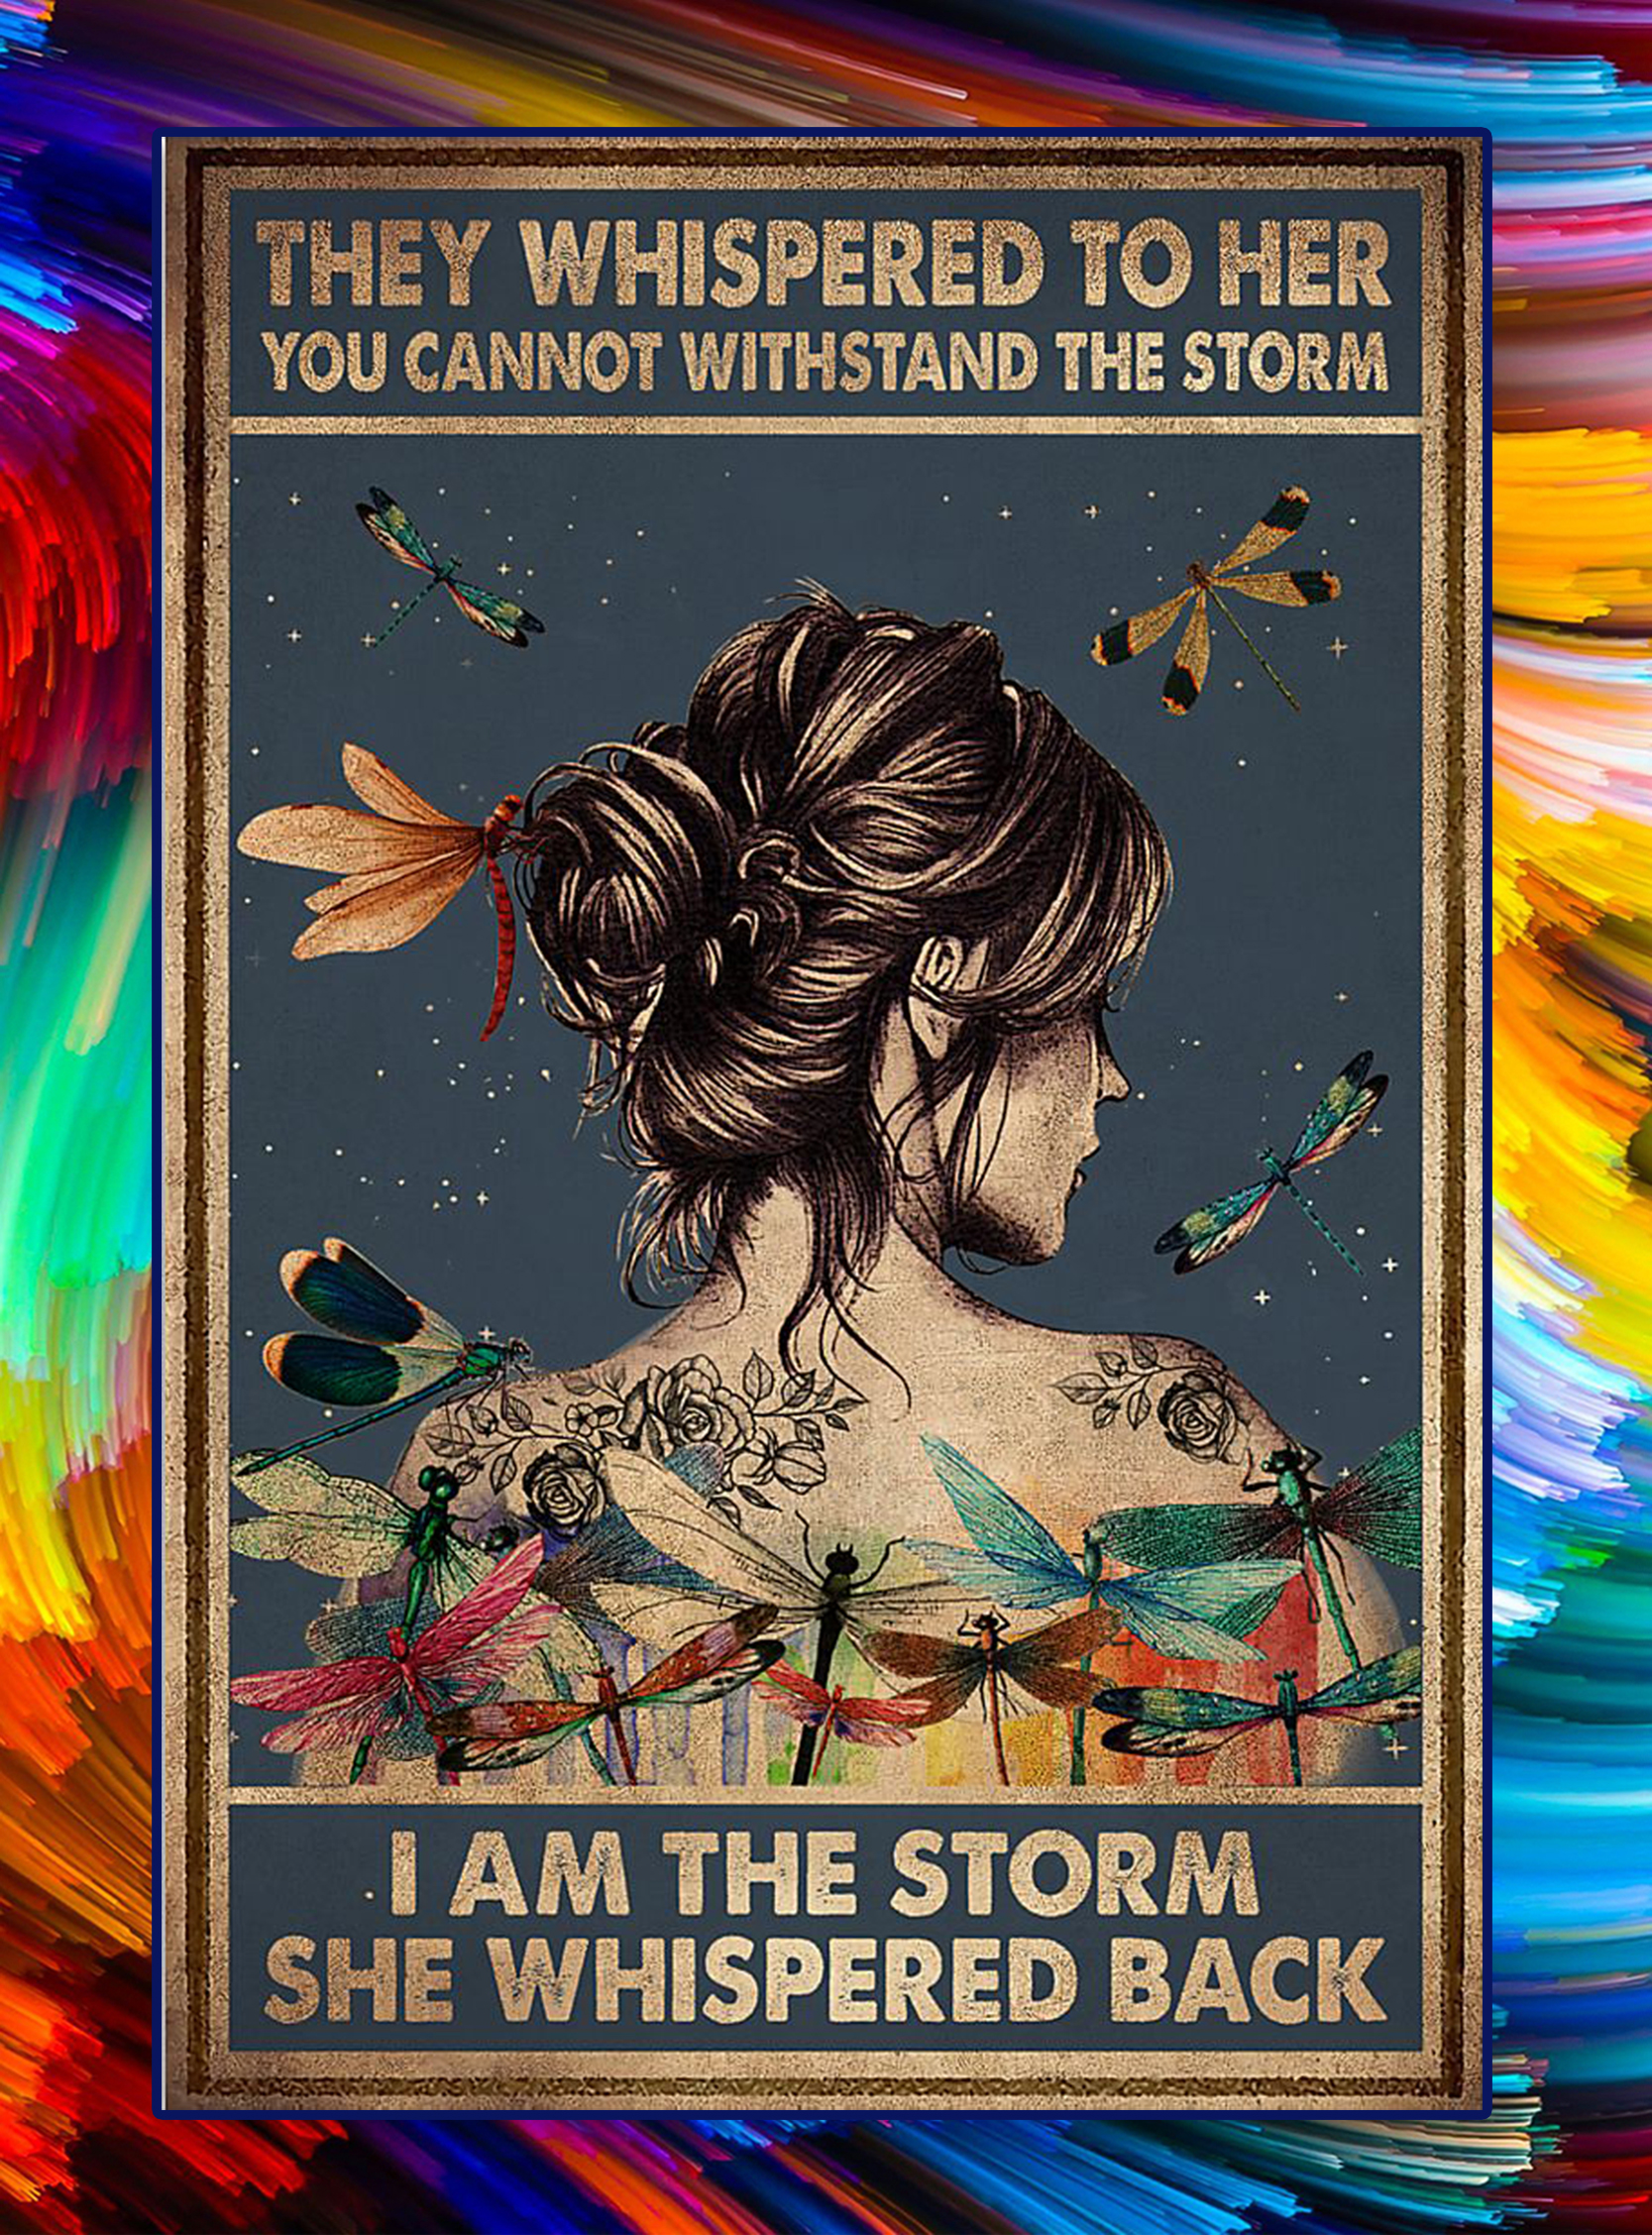 Hippie dragonfly they whispered to her i am the storm poster - A3